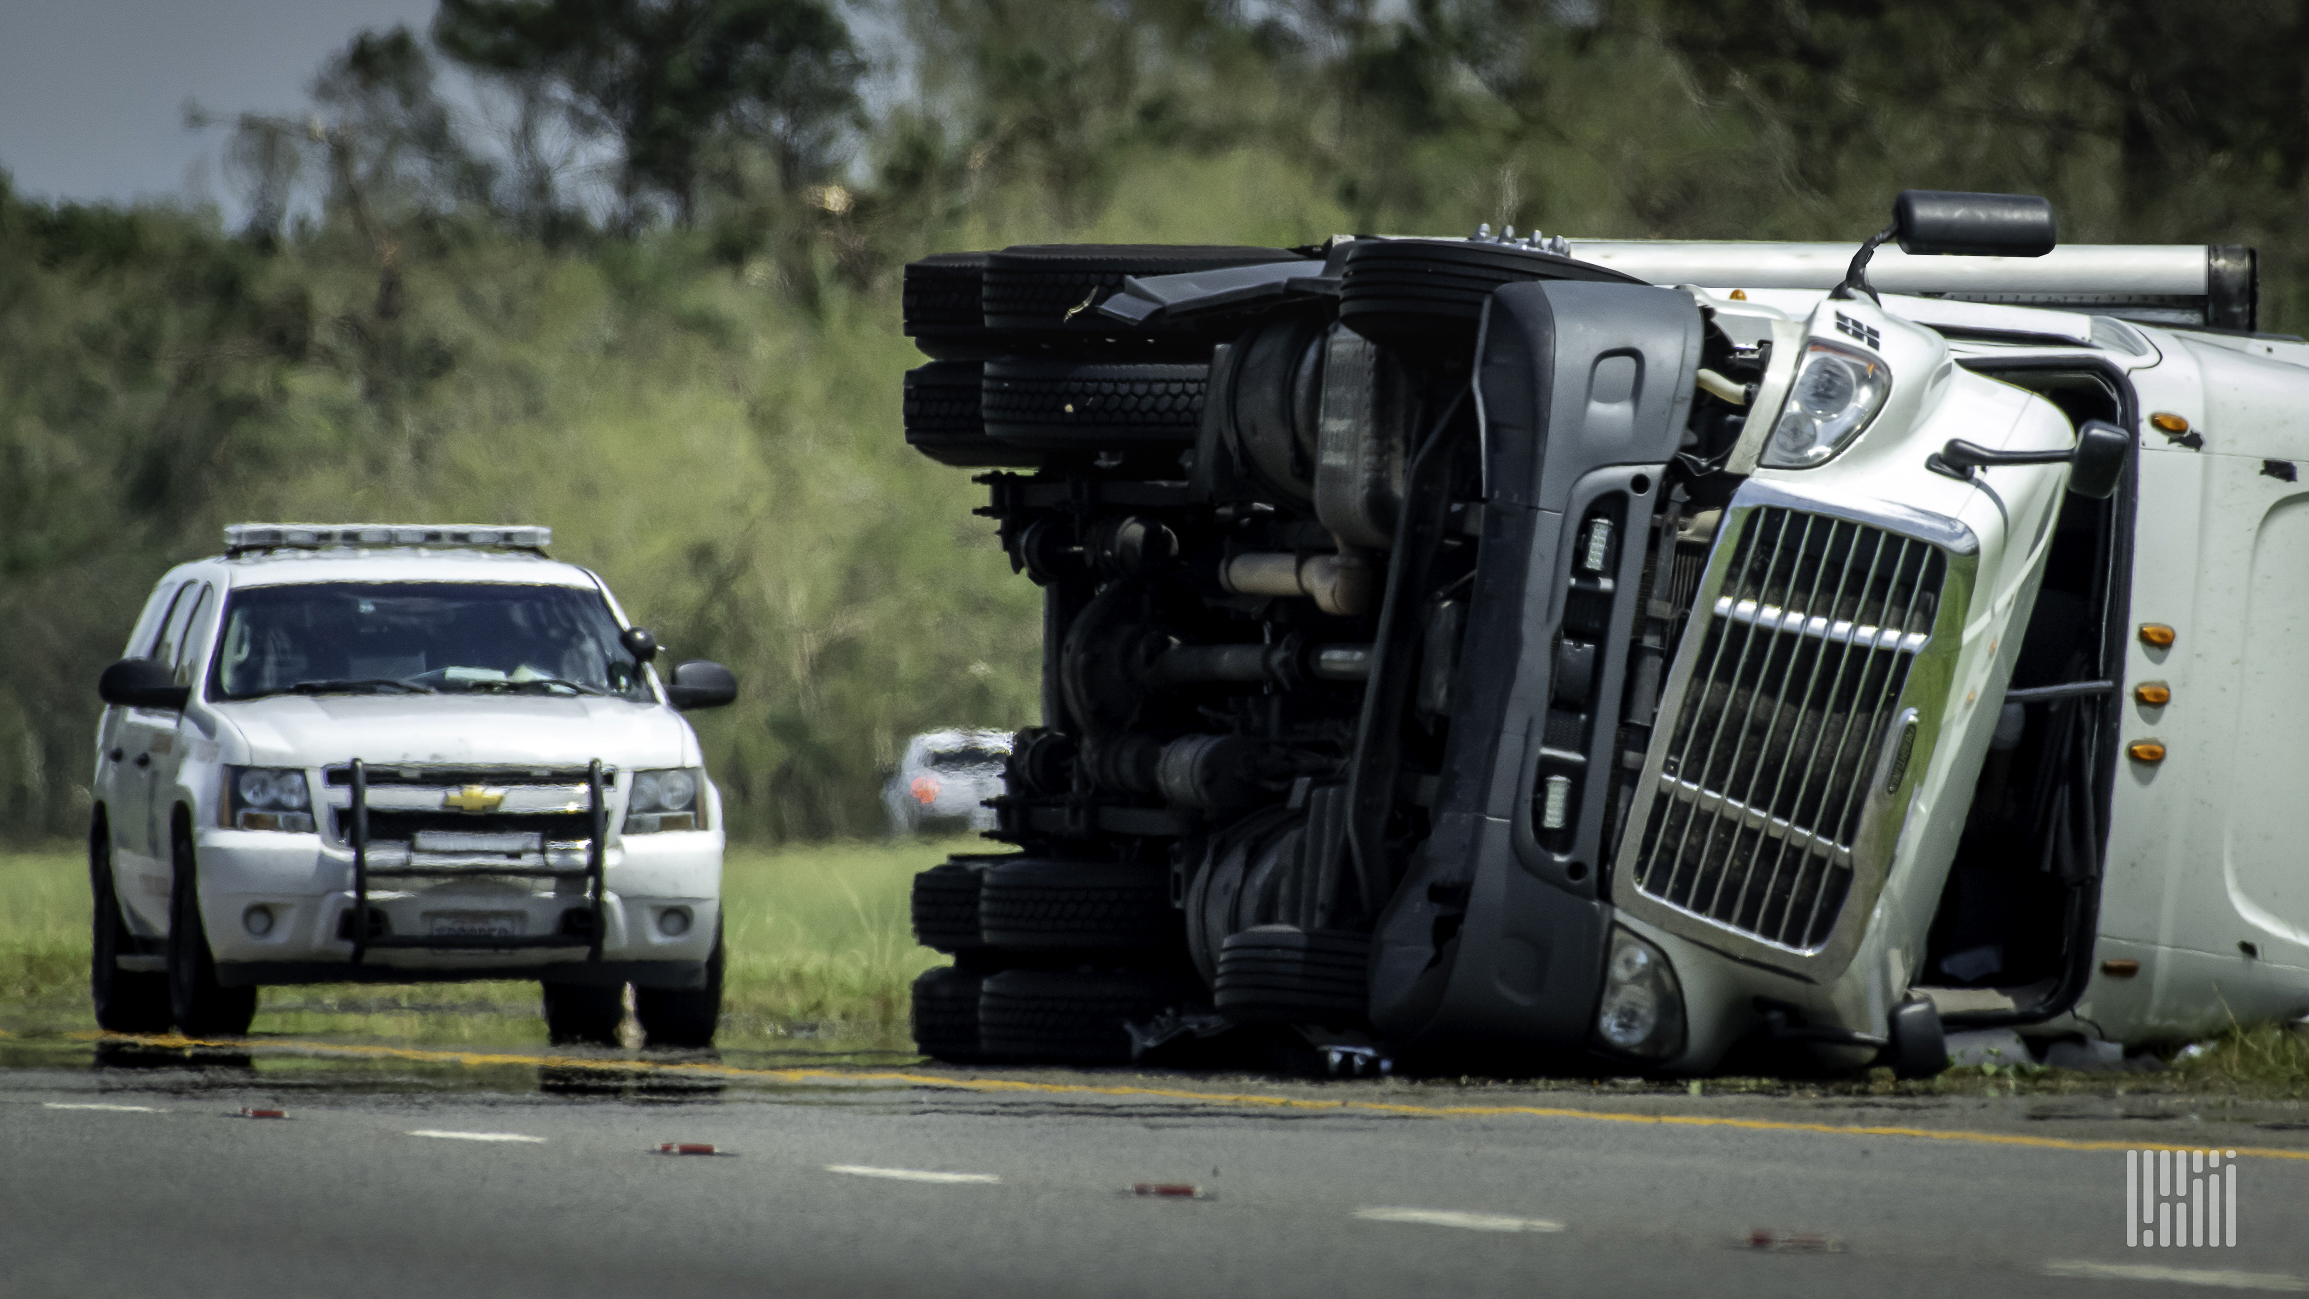 Safety expert reflects on emotional toll of truck accident - FreightWaves